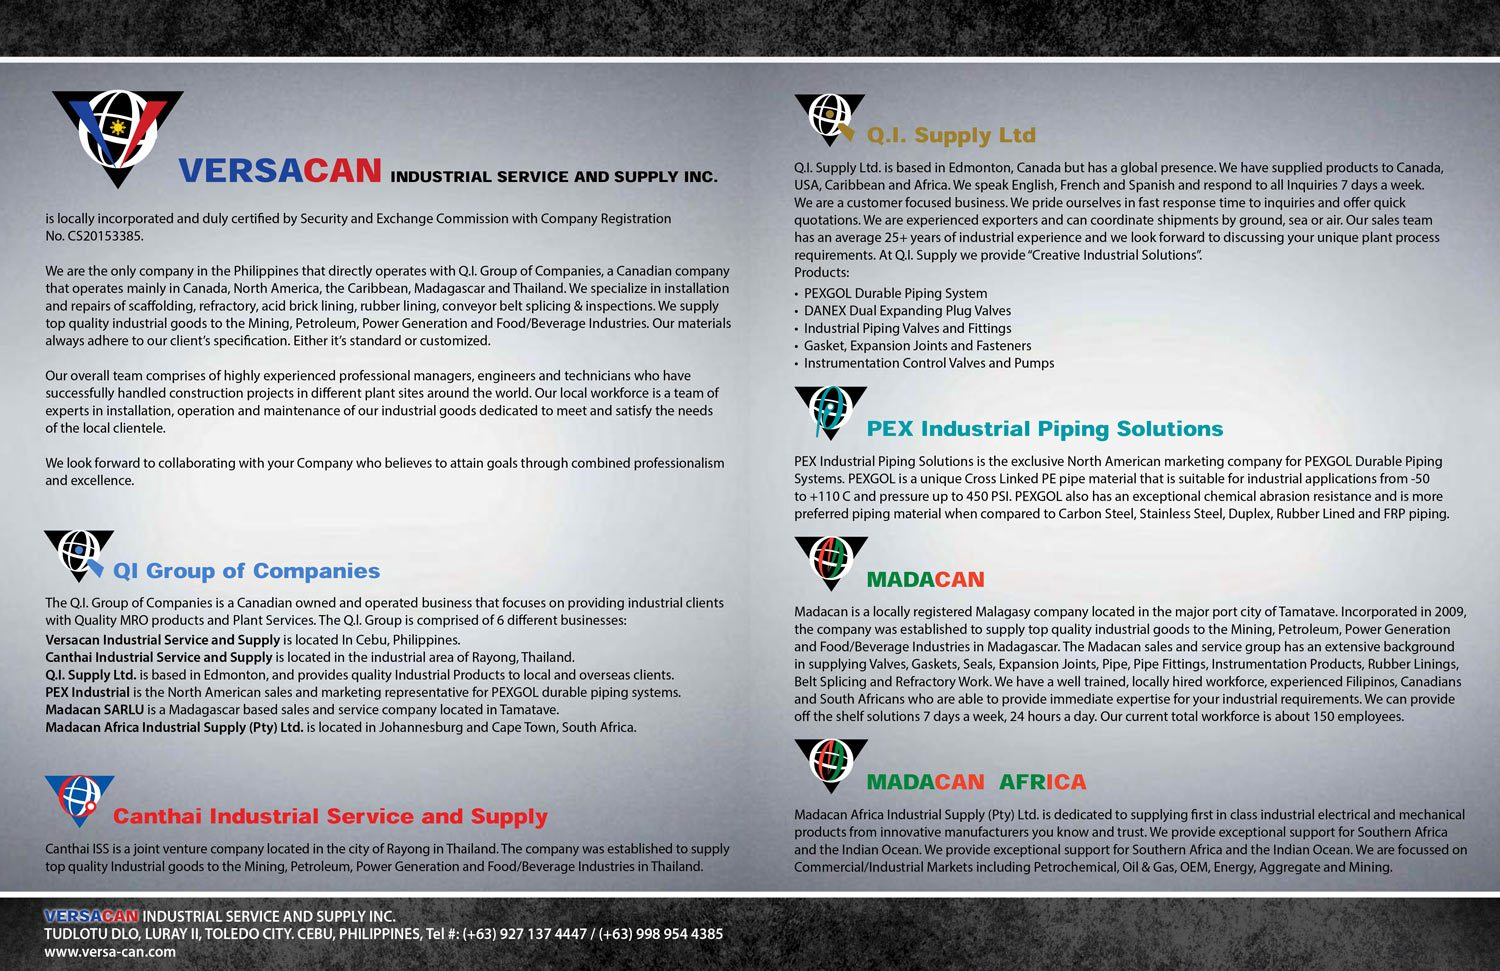 VERSACAN Industrial Service and Supply Inc. QI Group of Companies. Canthal Industrial Service and Supply. Q.I. Supply Ltd. PEX Industrial Piping Solutions. MADACAN. MADACAN AFRICA